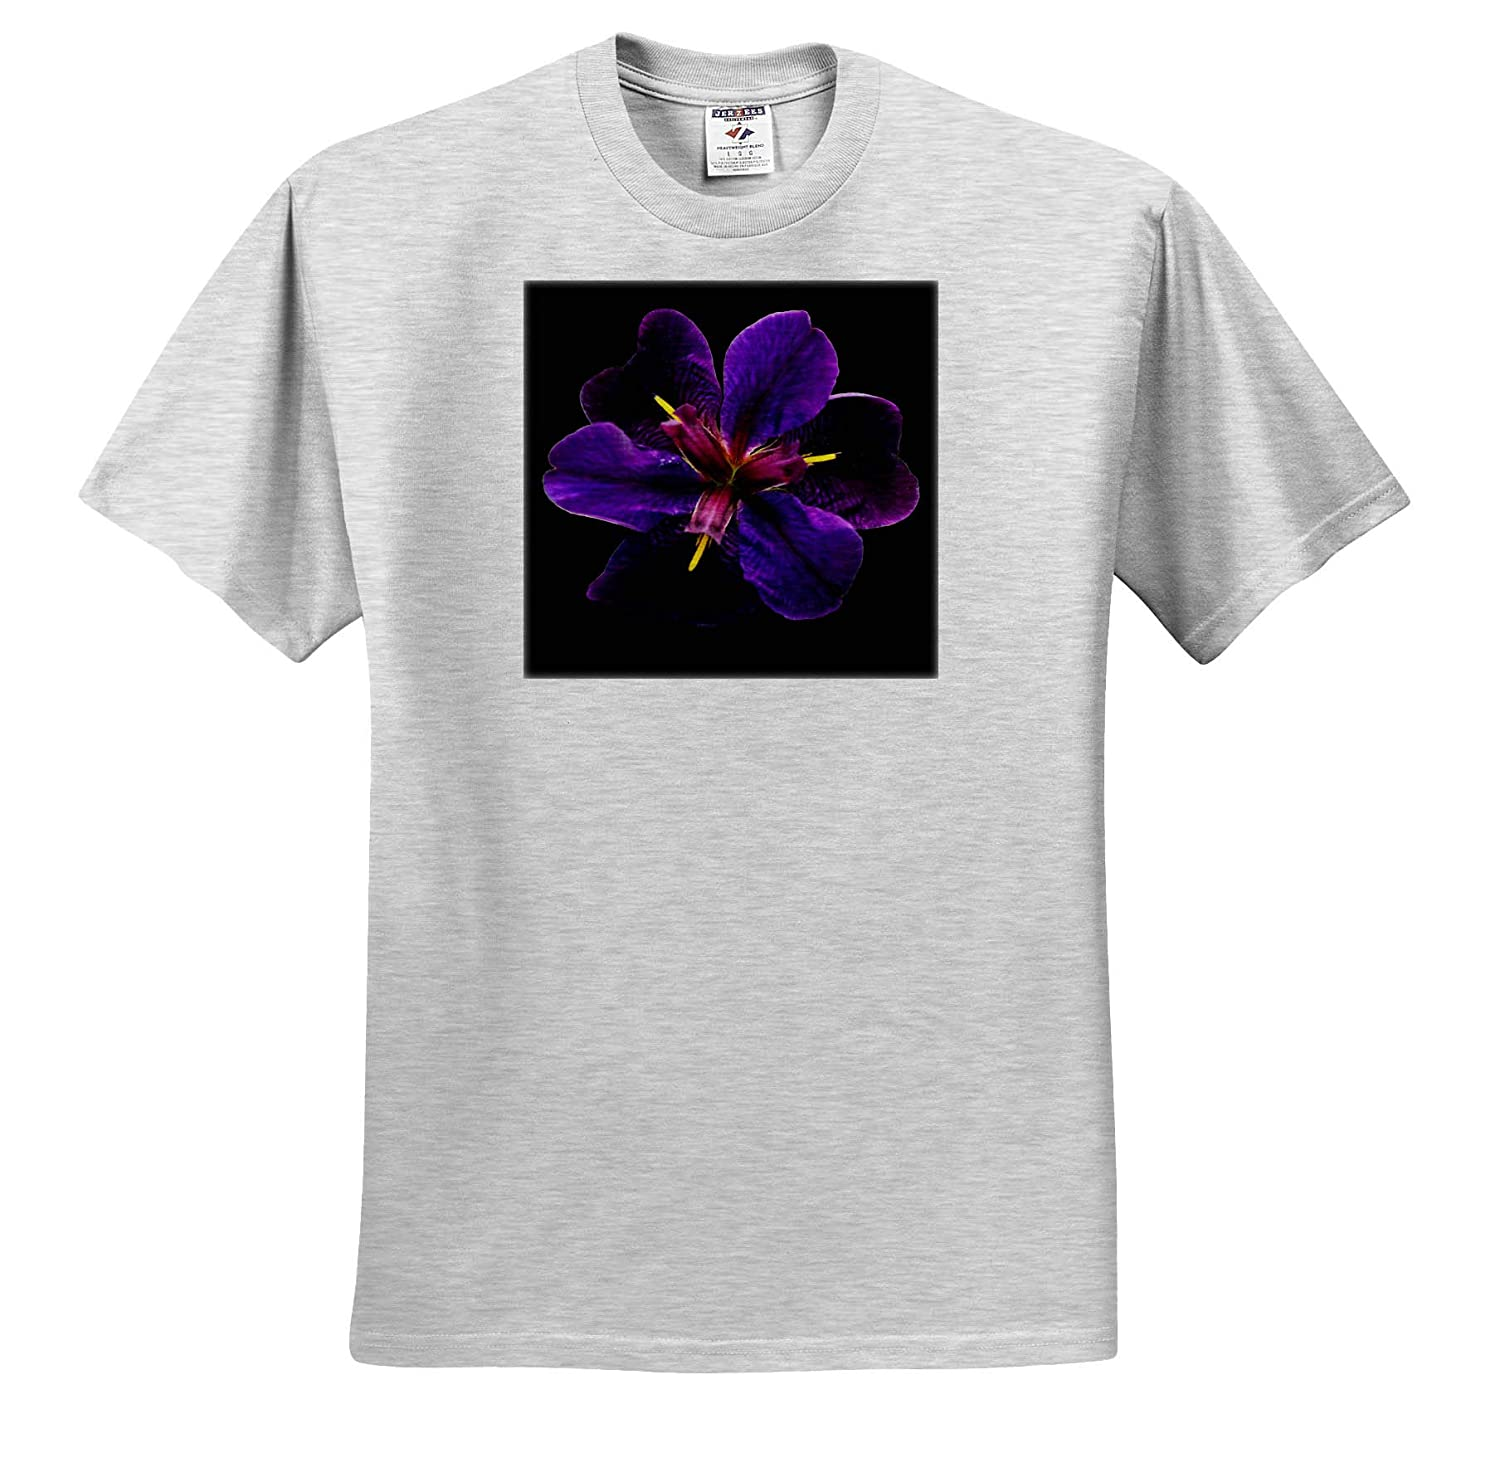 Macro Photograph of a Purple iris Flower on a Black Background ts/_320155 - Adult T-Shirt XL Flowers 3dRose Stamp City